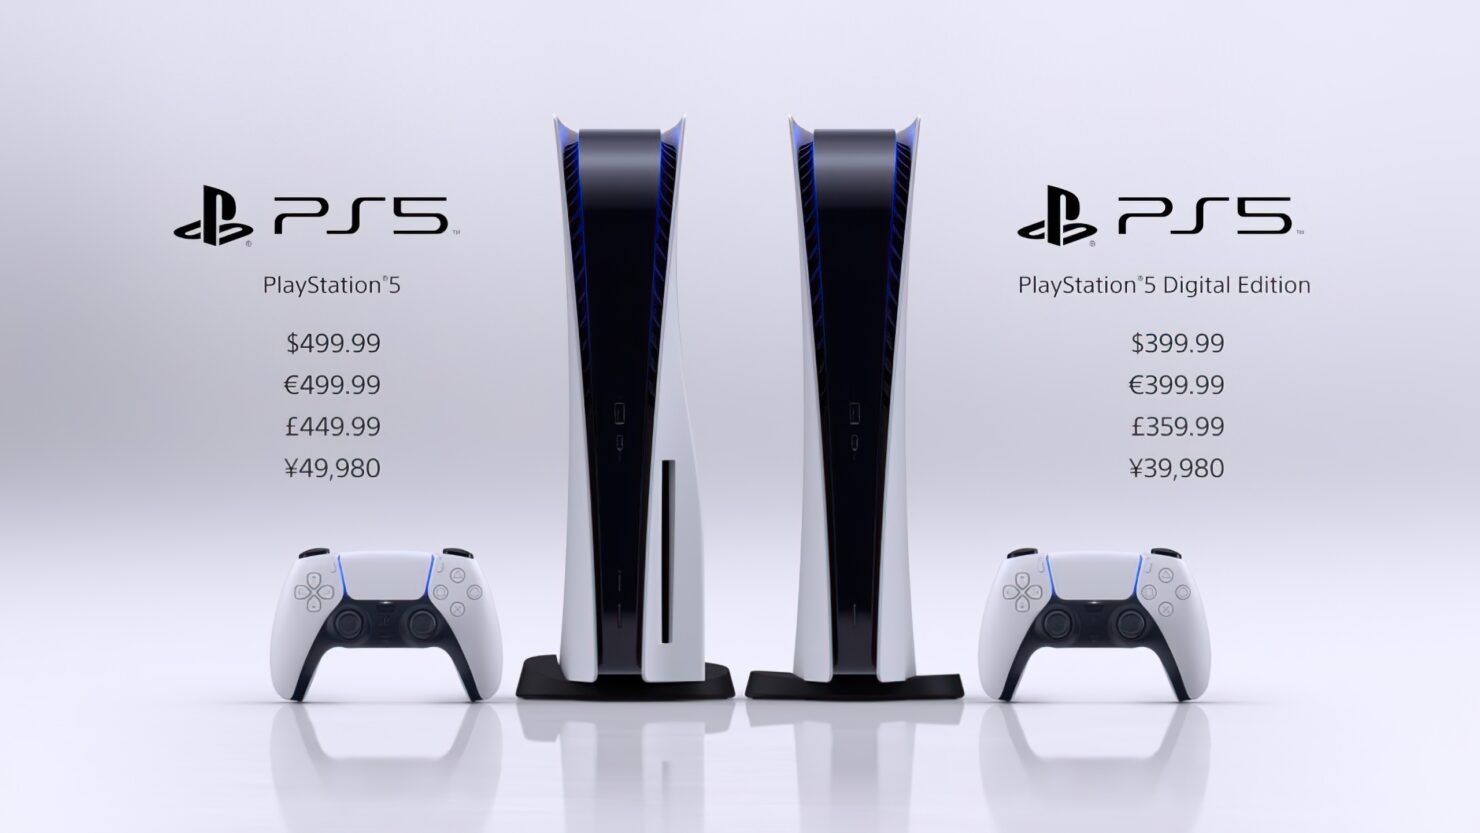 PS5 game prices